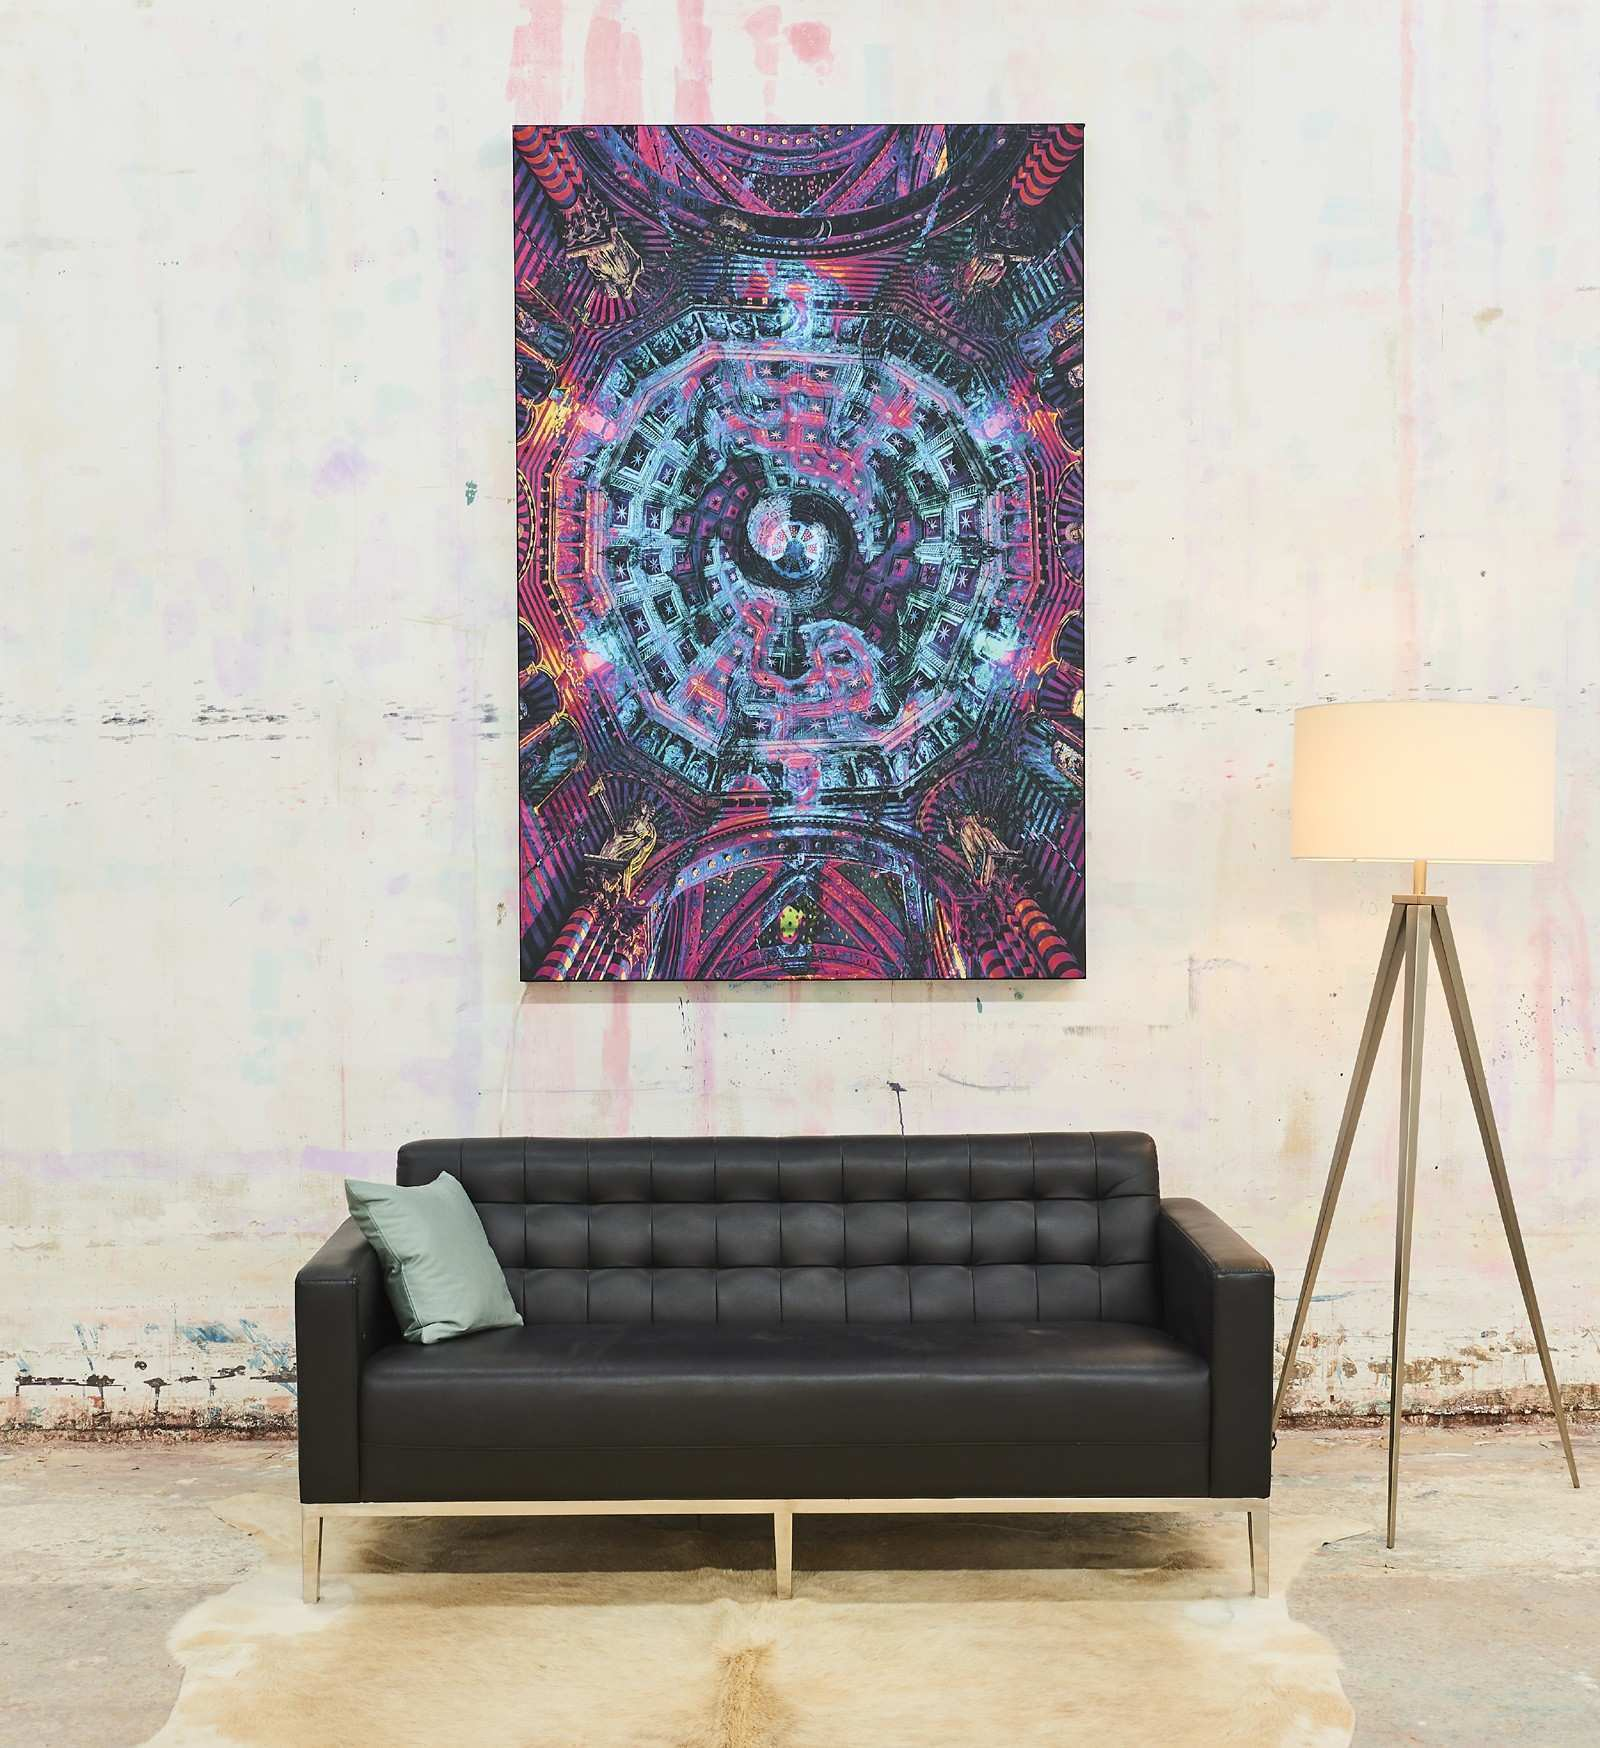 Big Wall Pictures for Living Room Inspirational Big Naked Wall Creates A New Art Category with Backlit Frames Art